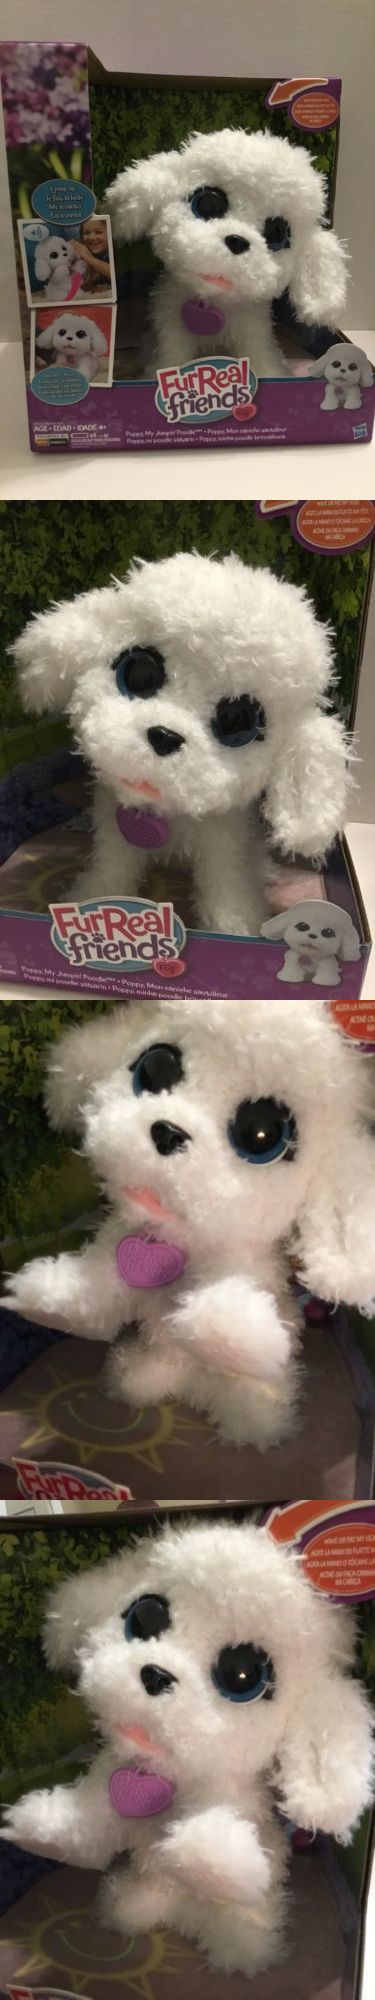 Furreal Friends 38288 Furreal Friends Poppy My Jumpin Poodle Interactive Puppy Dog Hasbro New Buy It Now Onl Fur Real Friends Interactive Puppy Poodle